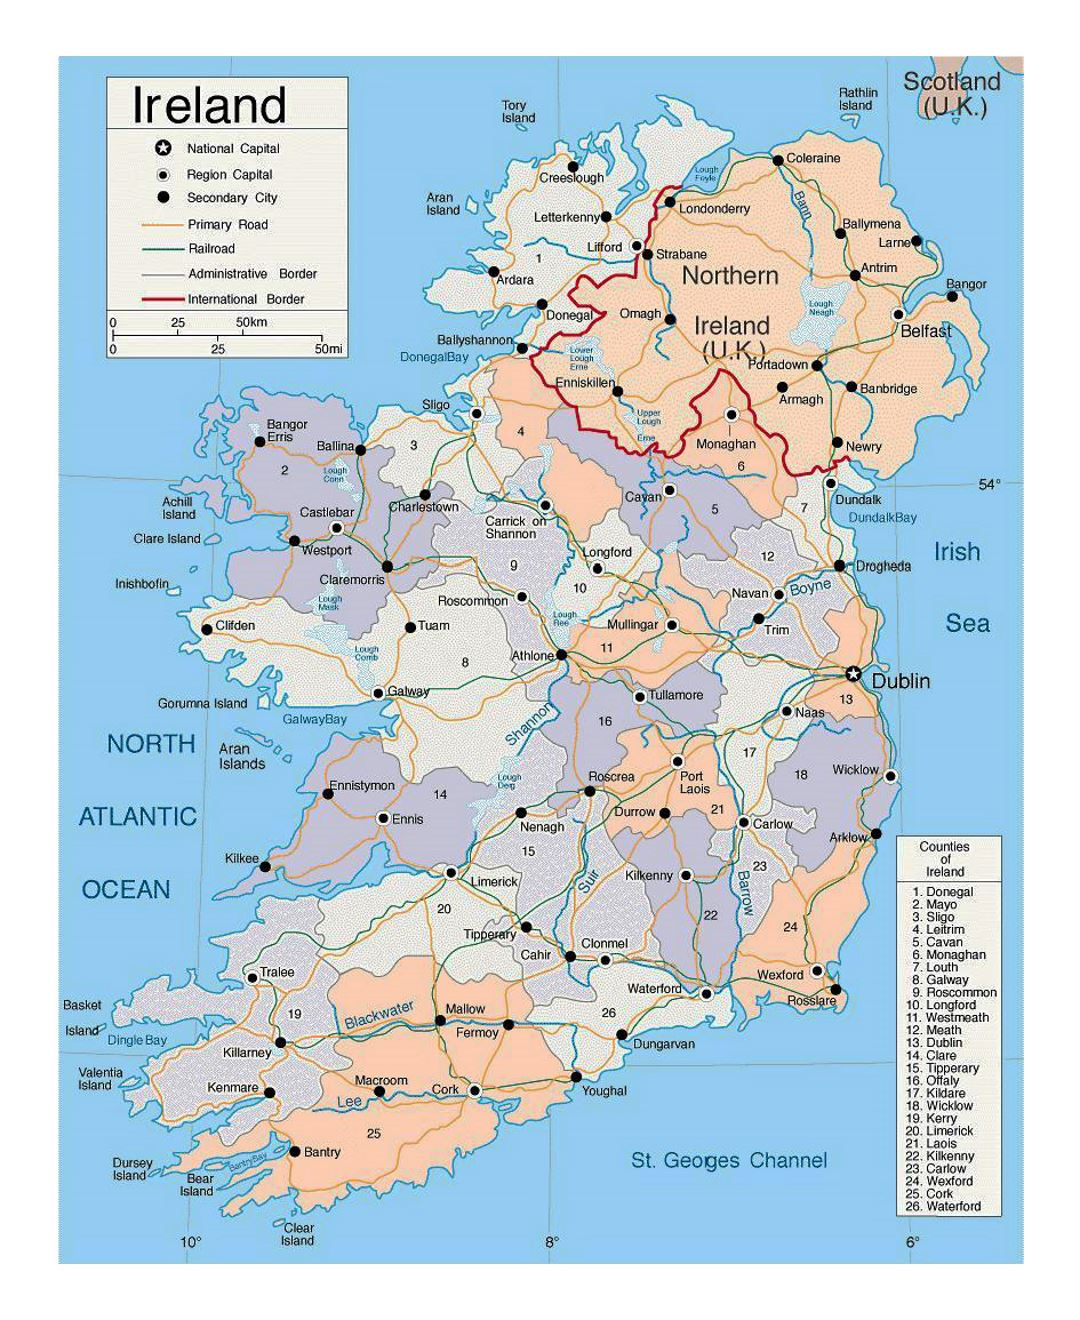 Detailed political and administrative map of Ireland with roads and major cities